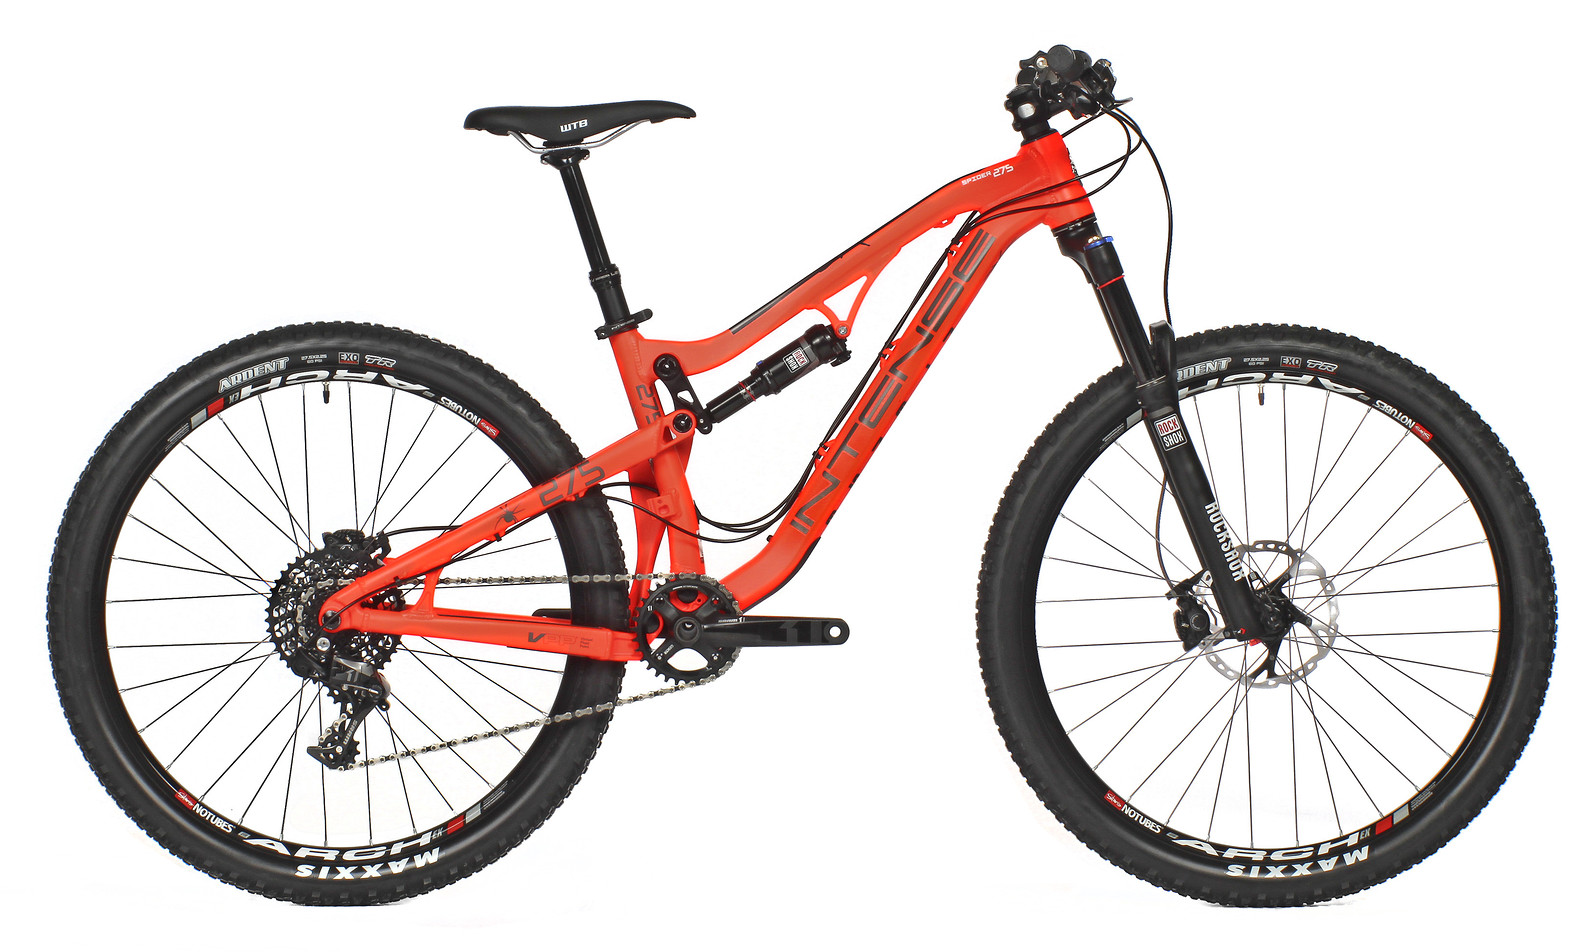 2015 Intense Spider 275 Pro  2015 Spider 275 Pro - Flo Red